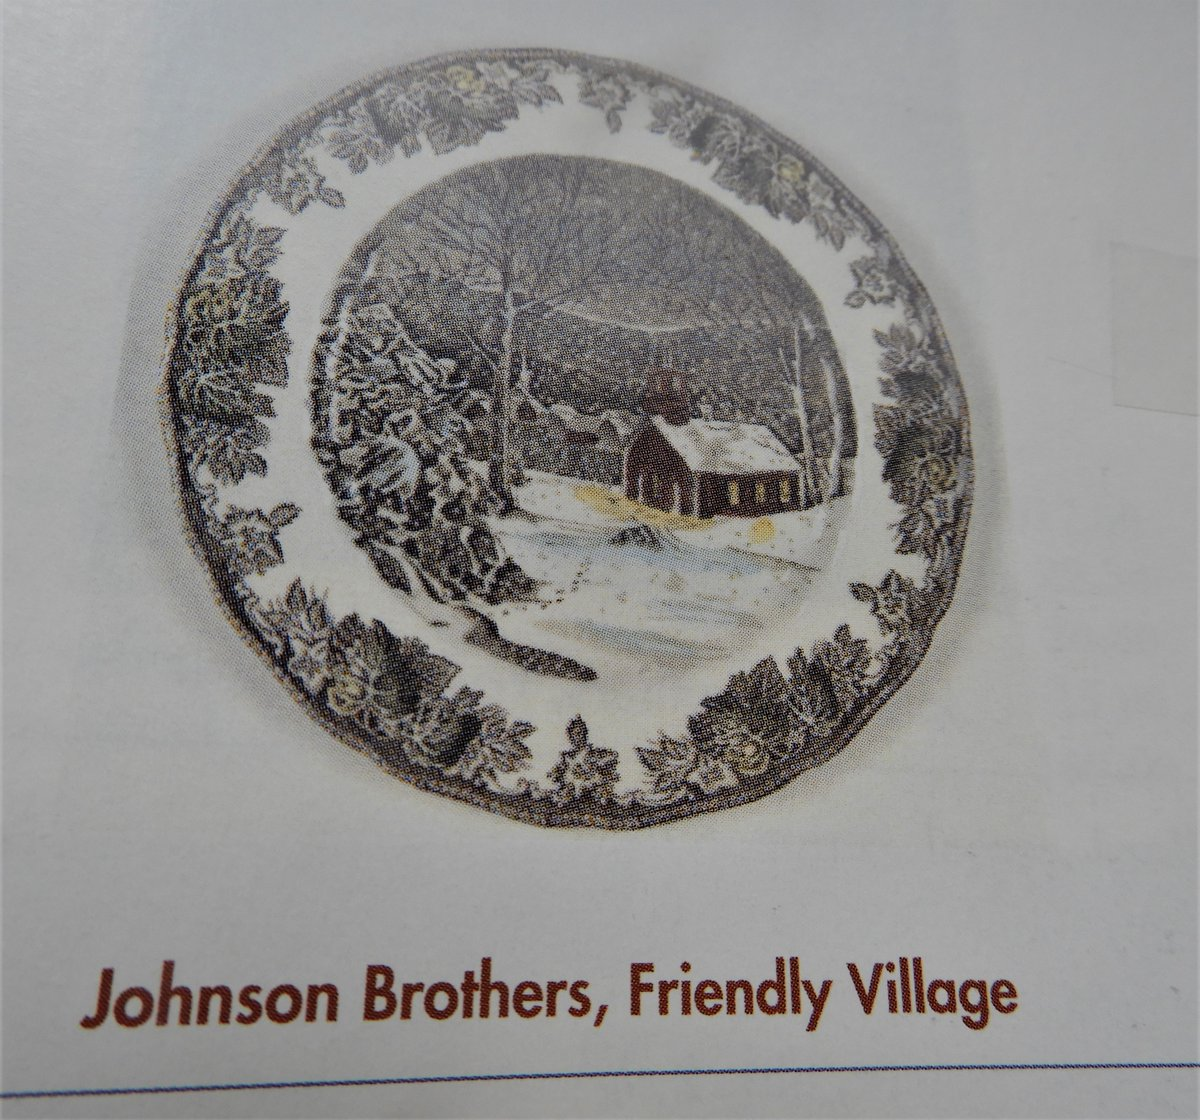 """Gracing many a table at Christmastime, this Johnson Brothers """"Friendly Village"""".  There are many different pieces to this. pic.twitter.com/s3eDqT2h7N"""